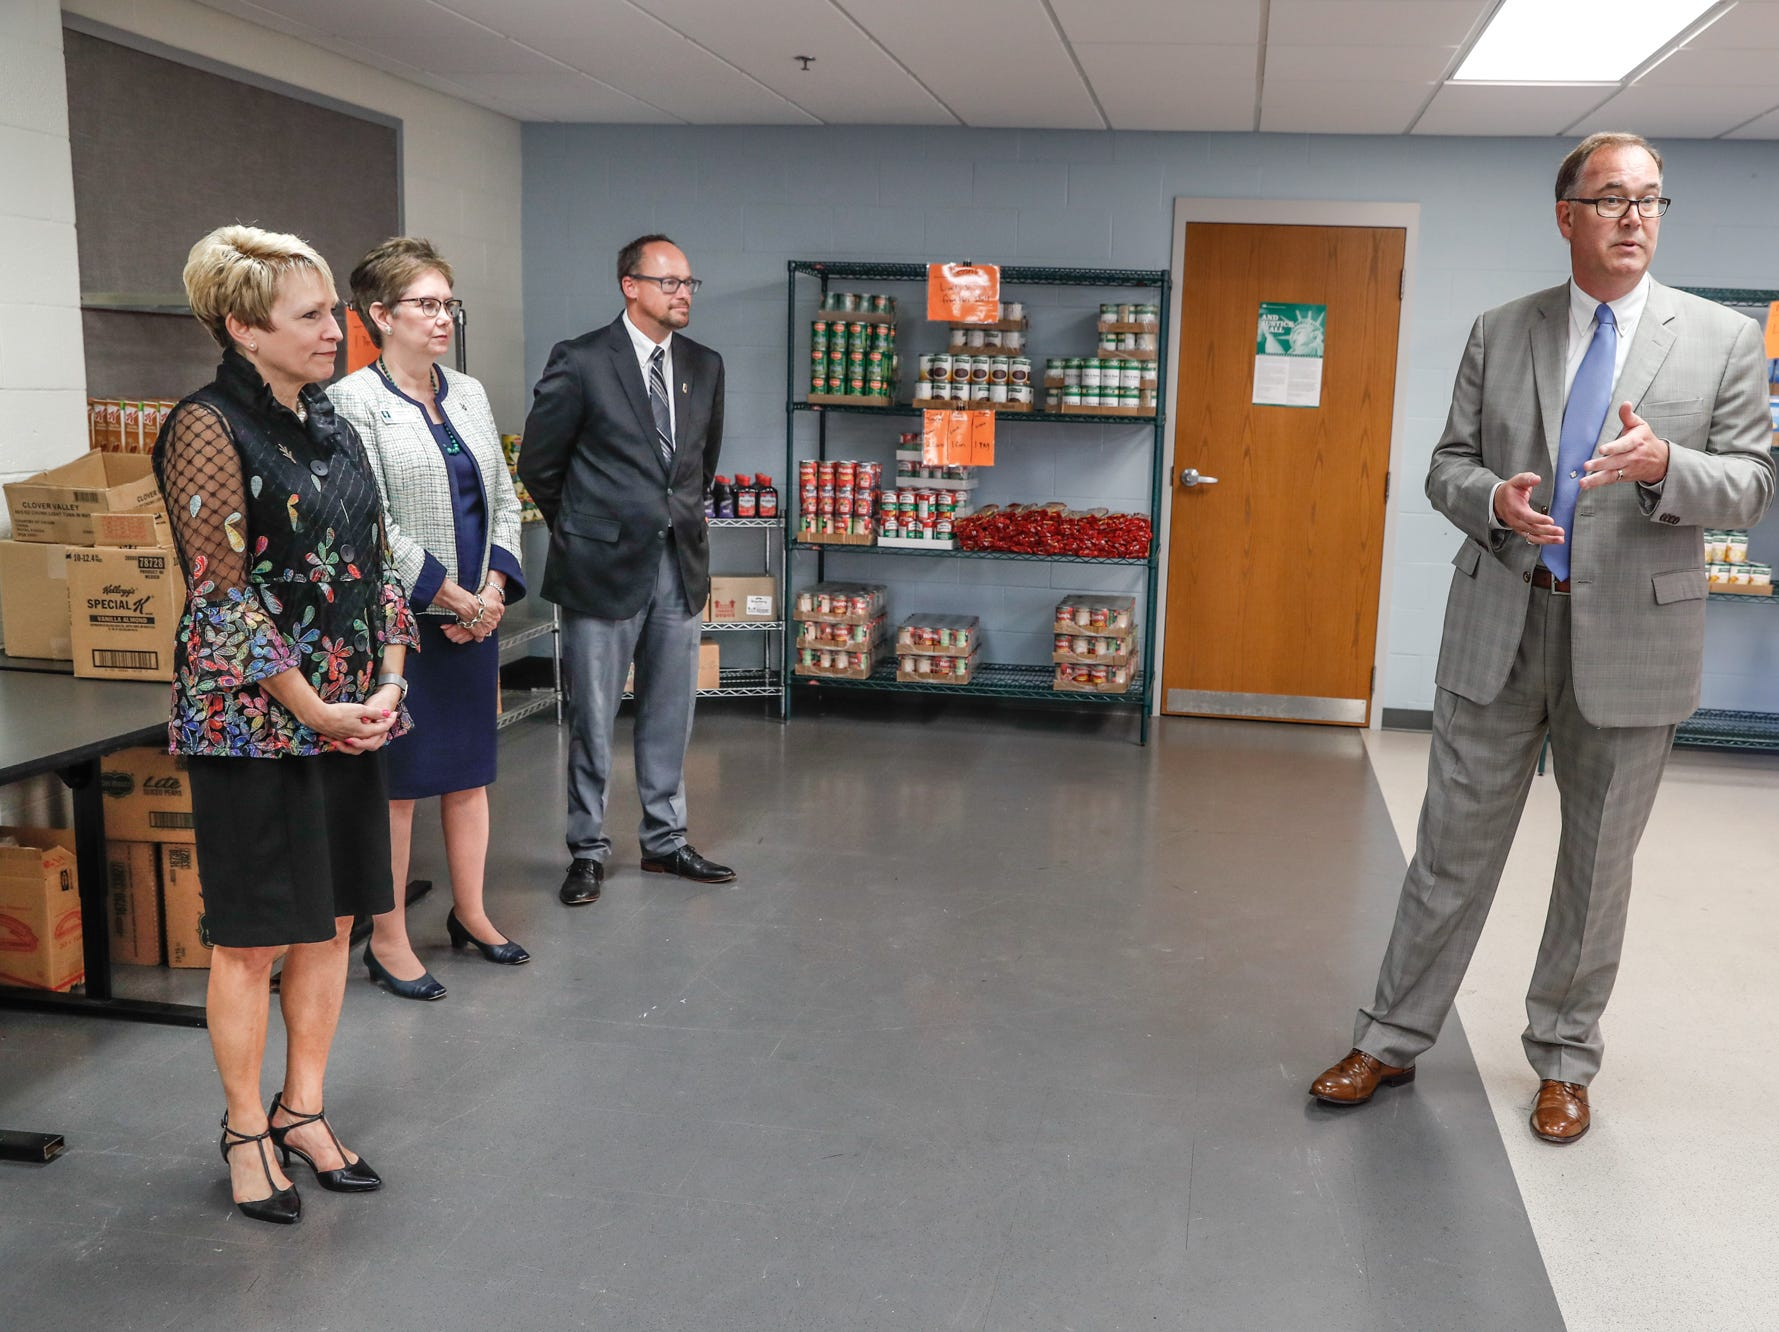 Left to right, Dr. Sue Ellspermann, president of Ivy Tech, Dr. Kathleen Lee, chancellor of Ivy Tech, Kent Kramer, president of Goodwill, and John Elliott, president and CEO of Gleaners Food Bank, take turns giving remarks during the official opening of Gleaners Hamilton County Cupboard food pantry at Ivy Tech in Noblesville Ind. on Thursday, Sept. 13, 2018. The Joint partnership among Gleaners, Ivy Tech and Goodwill will serve college students who are food-insecure.